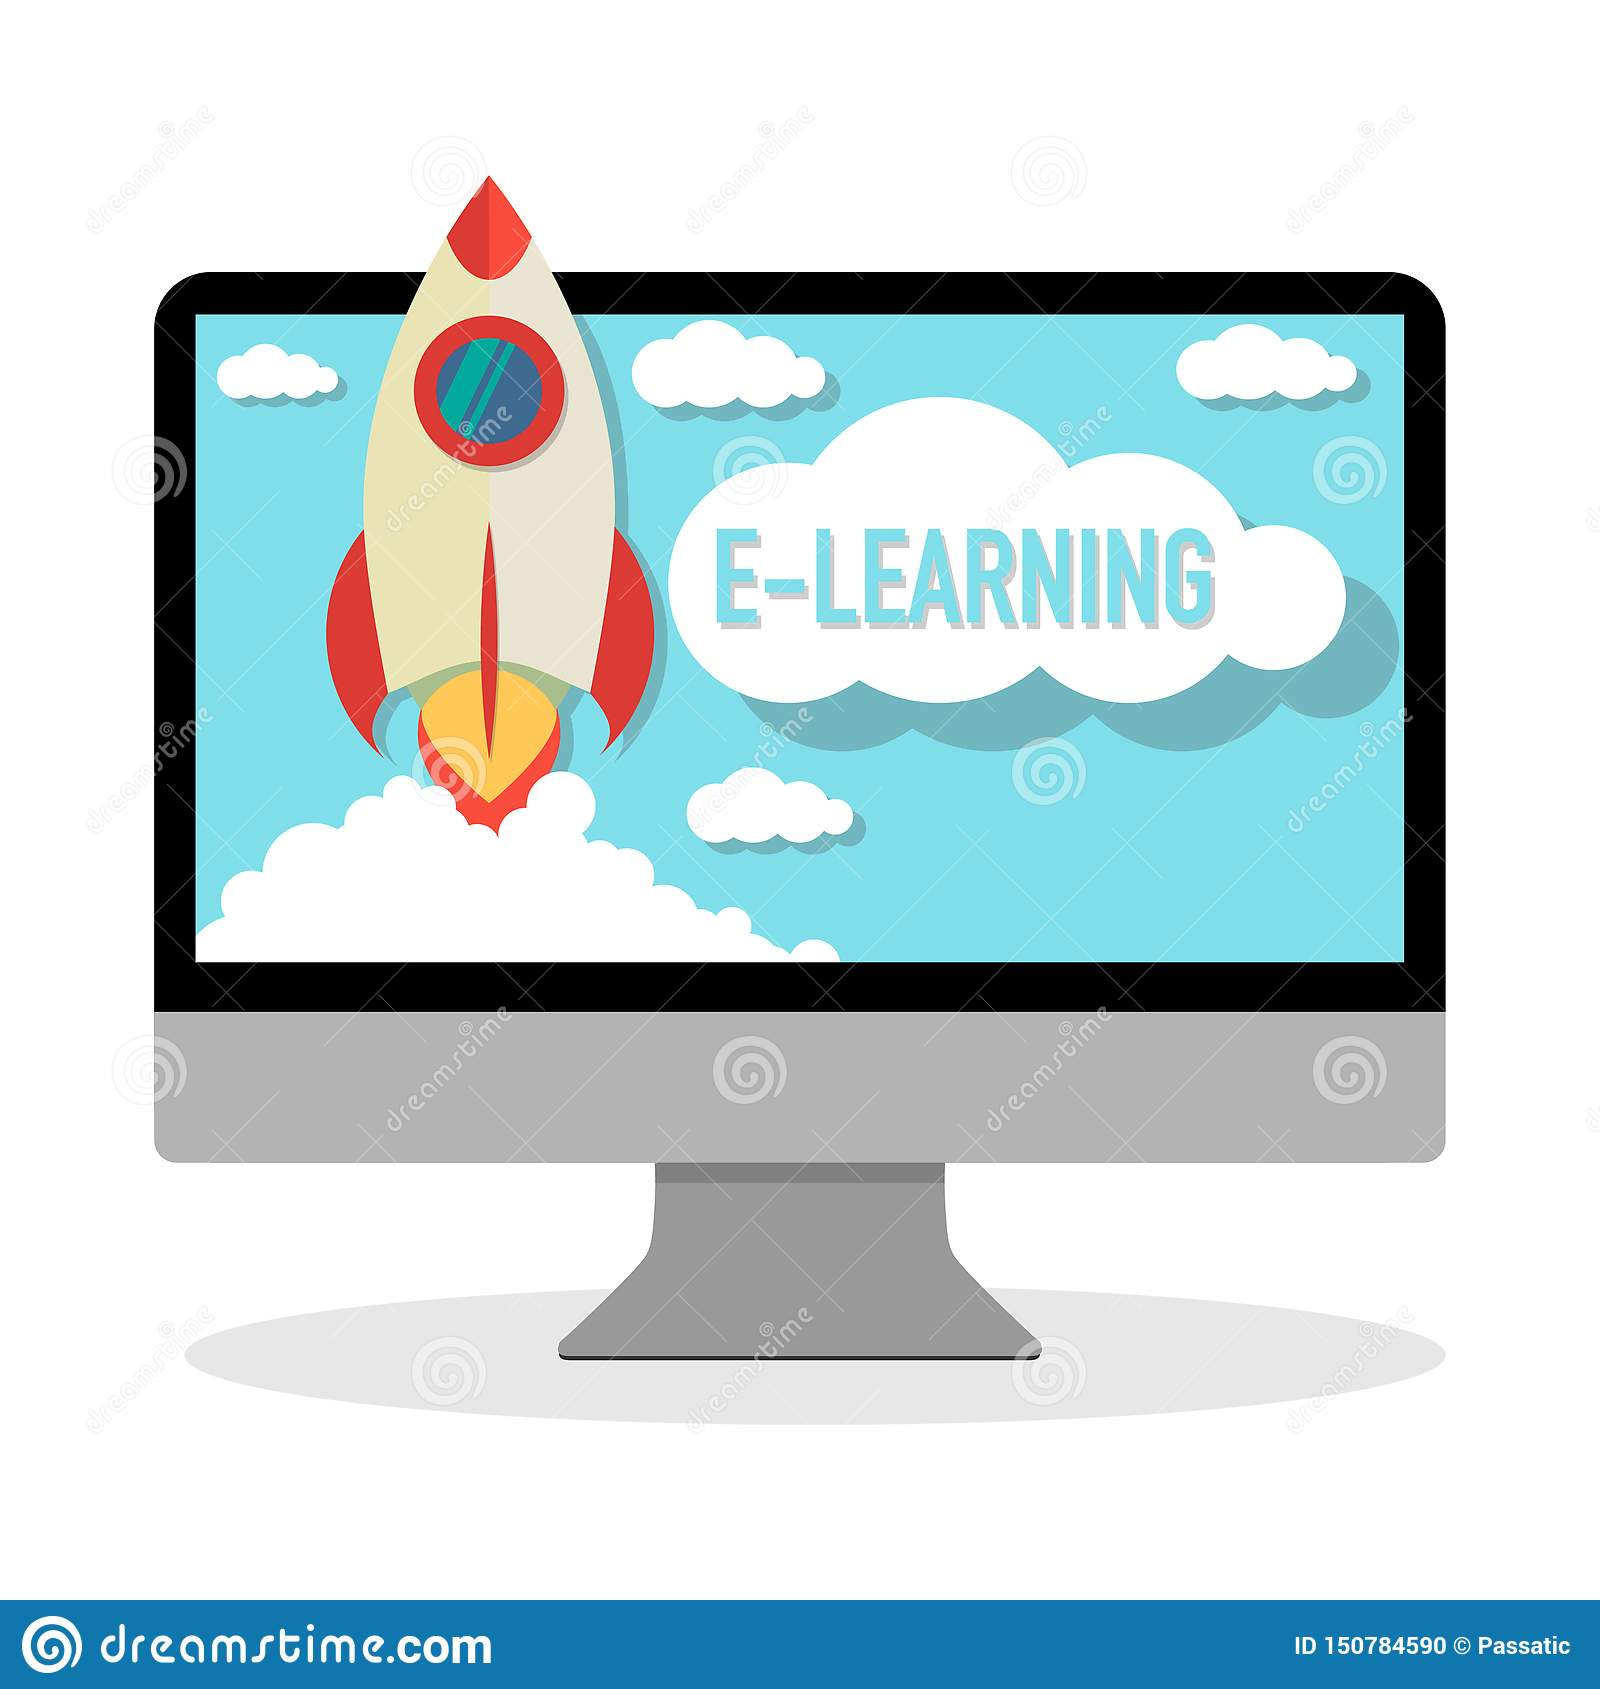 Online course e-learning computer with rocket launching